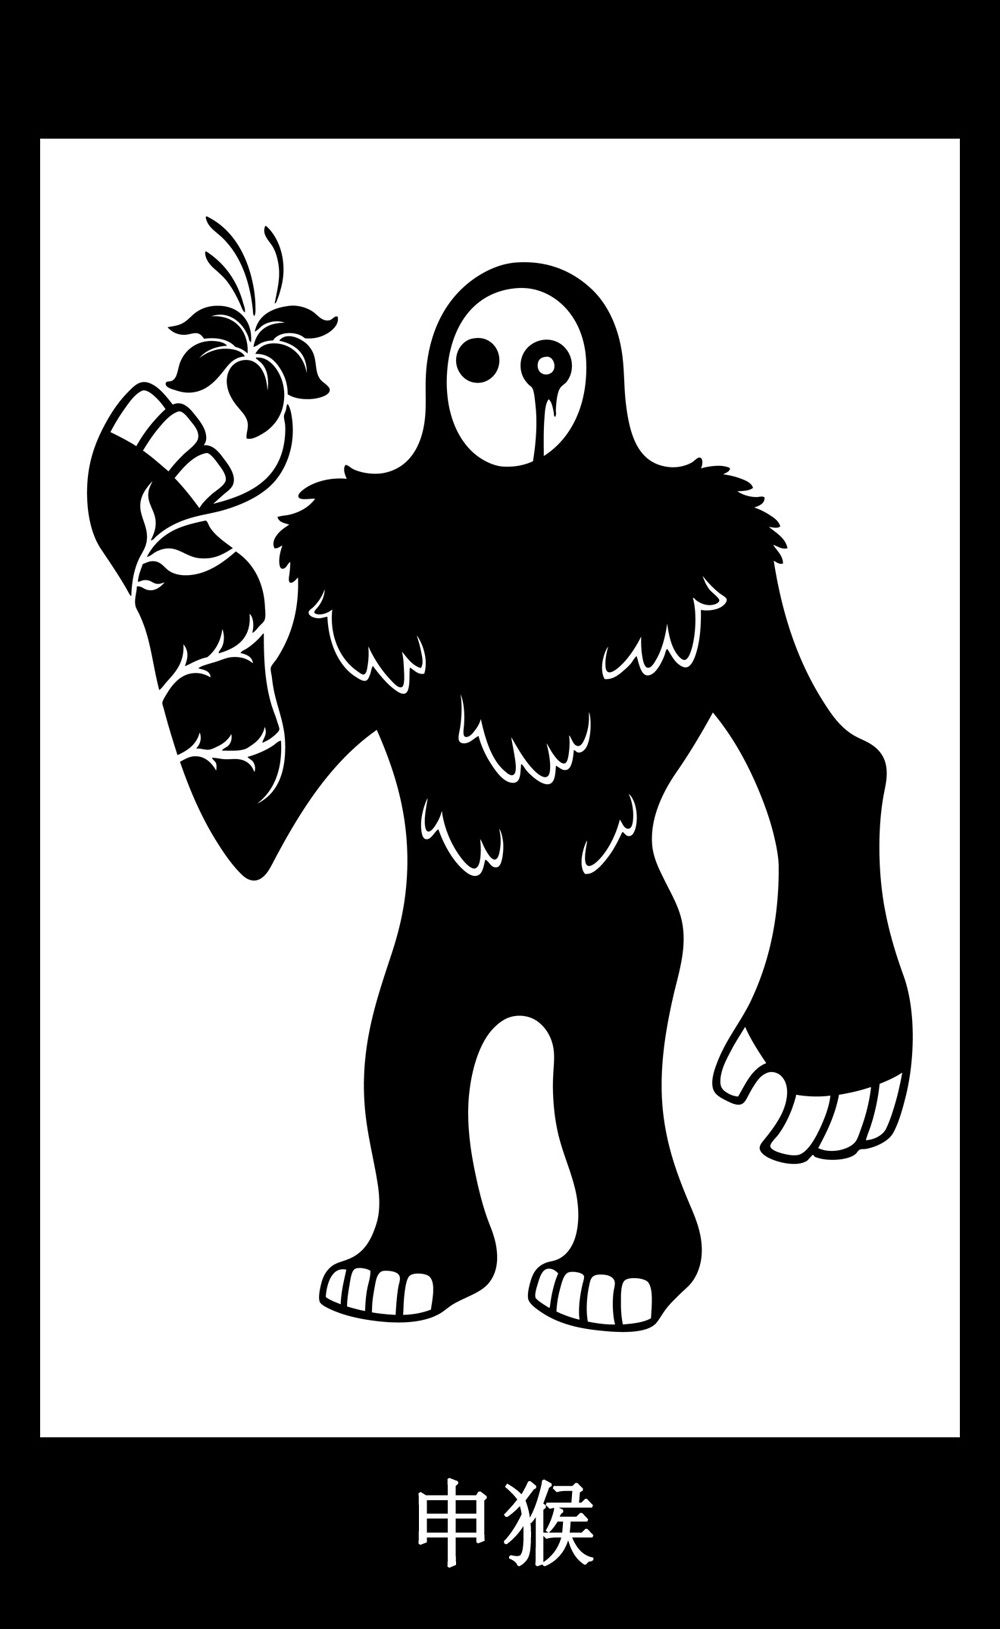 09 - Monkey - SCP-1000 - Bigfoot